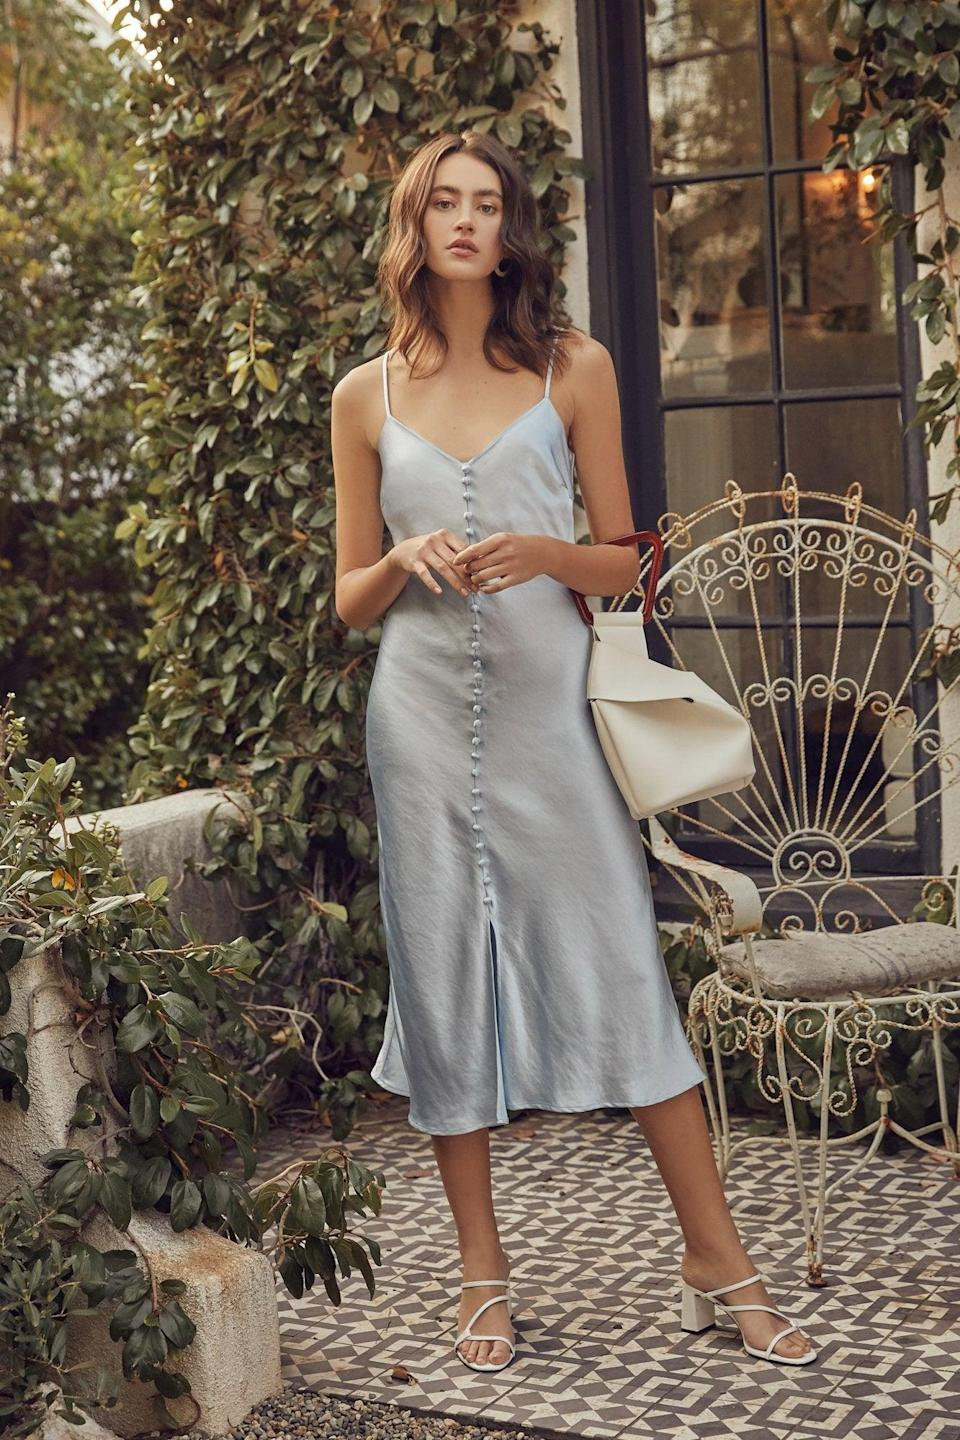 """Get <a href=""""https://www.lucyparis.com/"""" rel=""""nofollow noopener"""" target=""""_blank"""" data-ylk=""""slk:30% off sitewide at Lucy Paris"""" class=""""link rapid-noclick-resp"""">30% off sitewide at Lucy Paris</a> using the checkout code SUMMERREADY. <br> <br> <strong>Lucy Paris</strong> Leonie Slip Dress, $, available at <a href=""""https://go.skimresources.com/?id=30283X879131&url=https%3A%2F%2Fwww.lucyparis.com%2Fcollections%2Fdresses%2Fproducts%2Fleonie-slip-dress-blue"""" rel=""""nofollow noopener"""" target=""""_blank"""" data-ylk=""""slk:Lucy Paris"""" class=""""link rapid-noclick-resp"""">Lucy Paris</a>"""